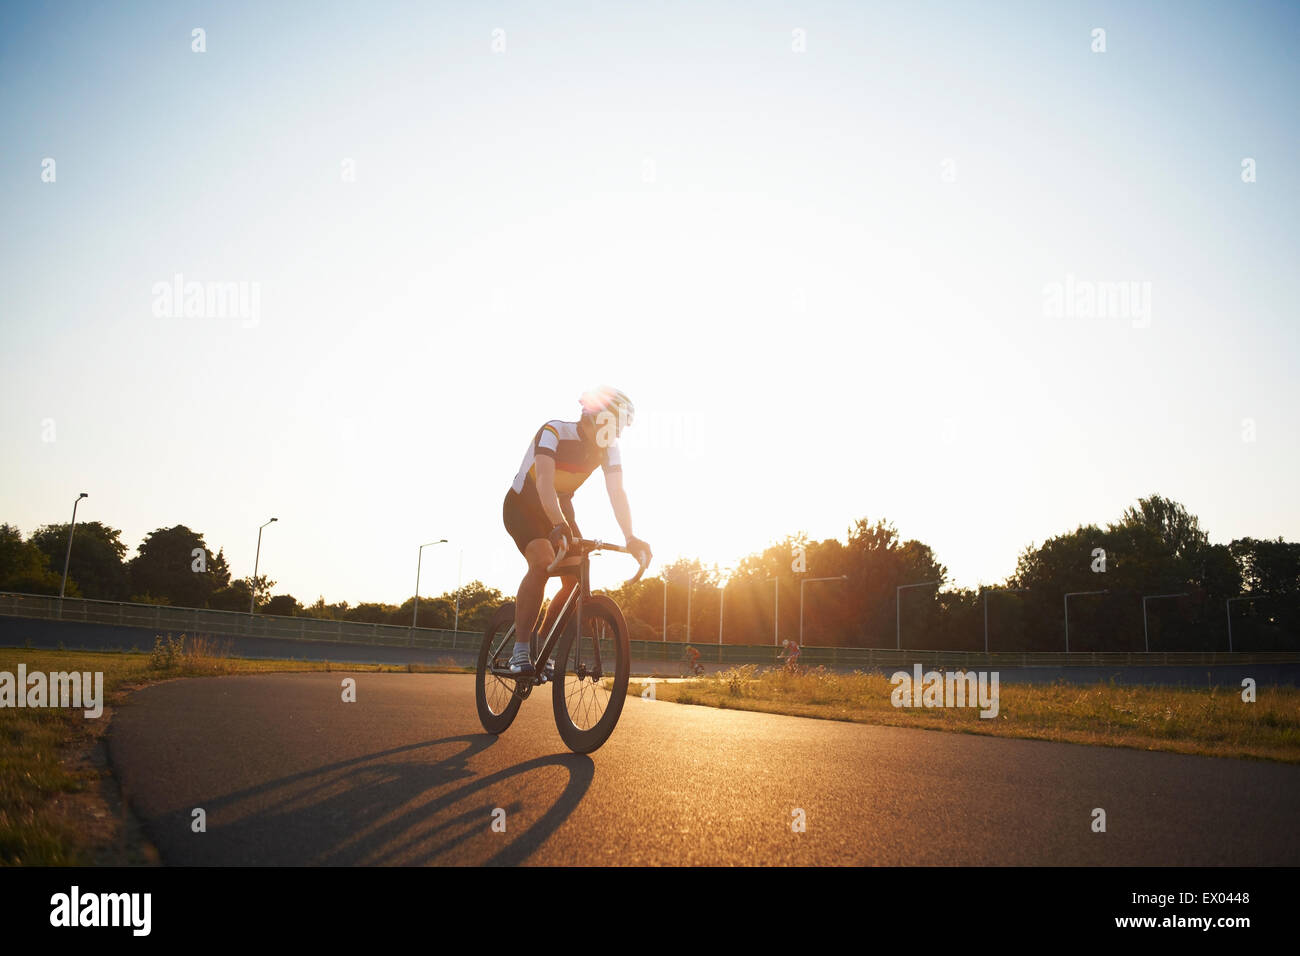 Cyclists cycling on track, outdoors - Stock Image